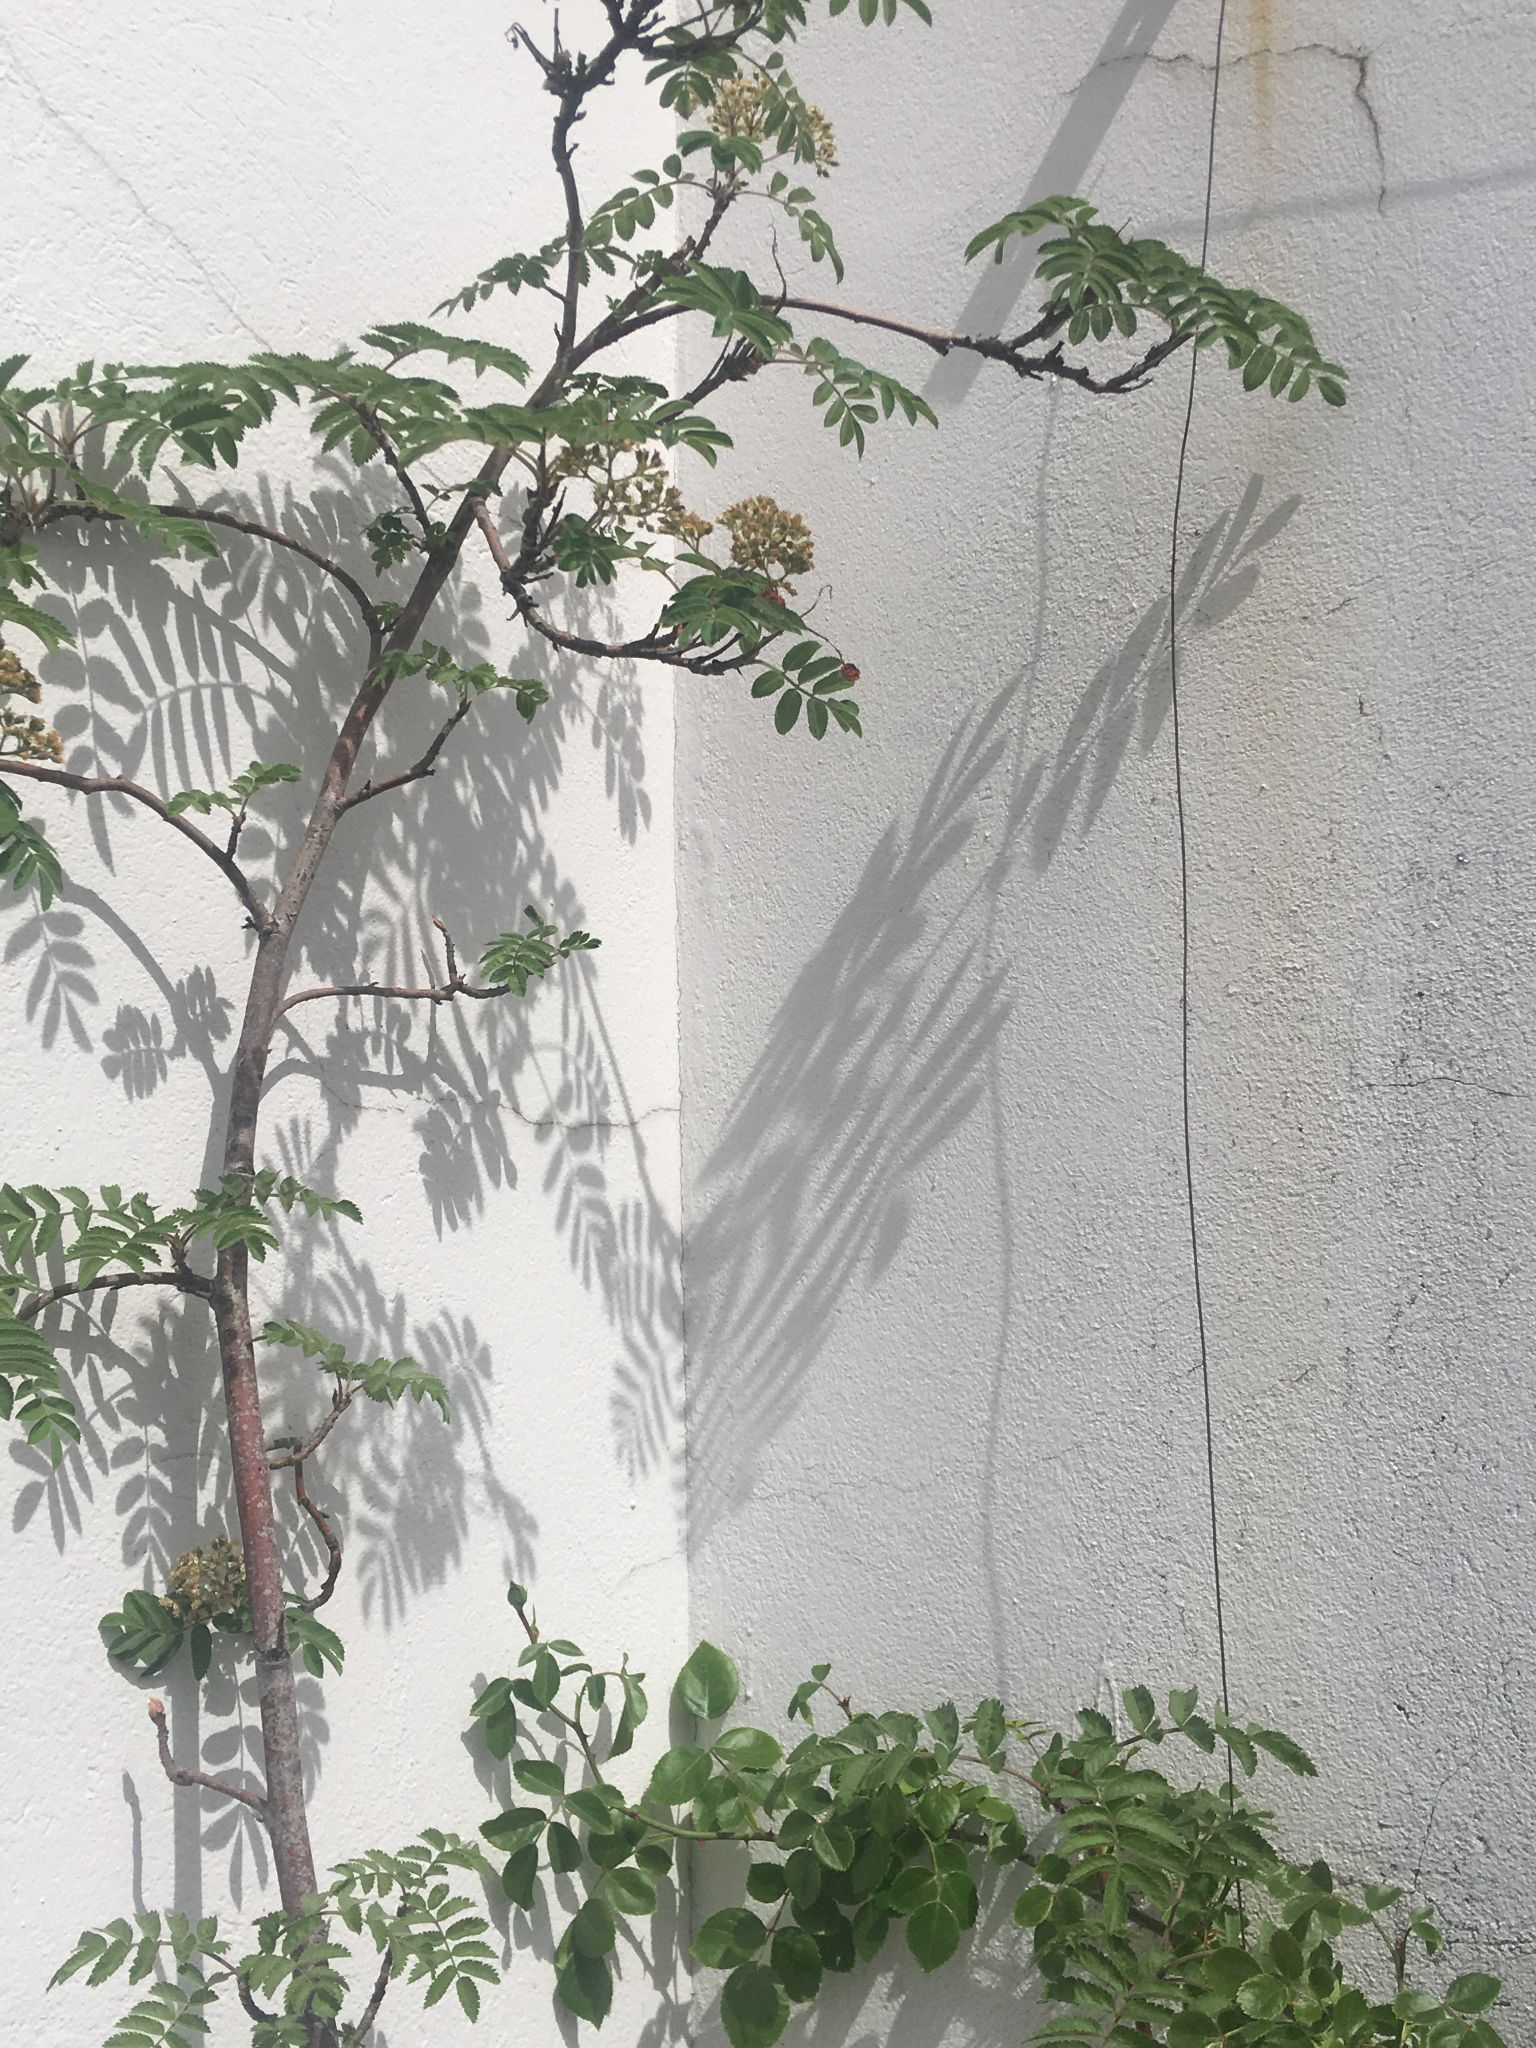 A white cement wall with cracks and wire.  A small bush and tree reflect a shadow onto the corner.